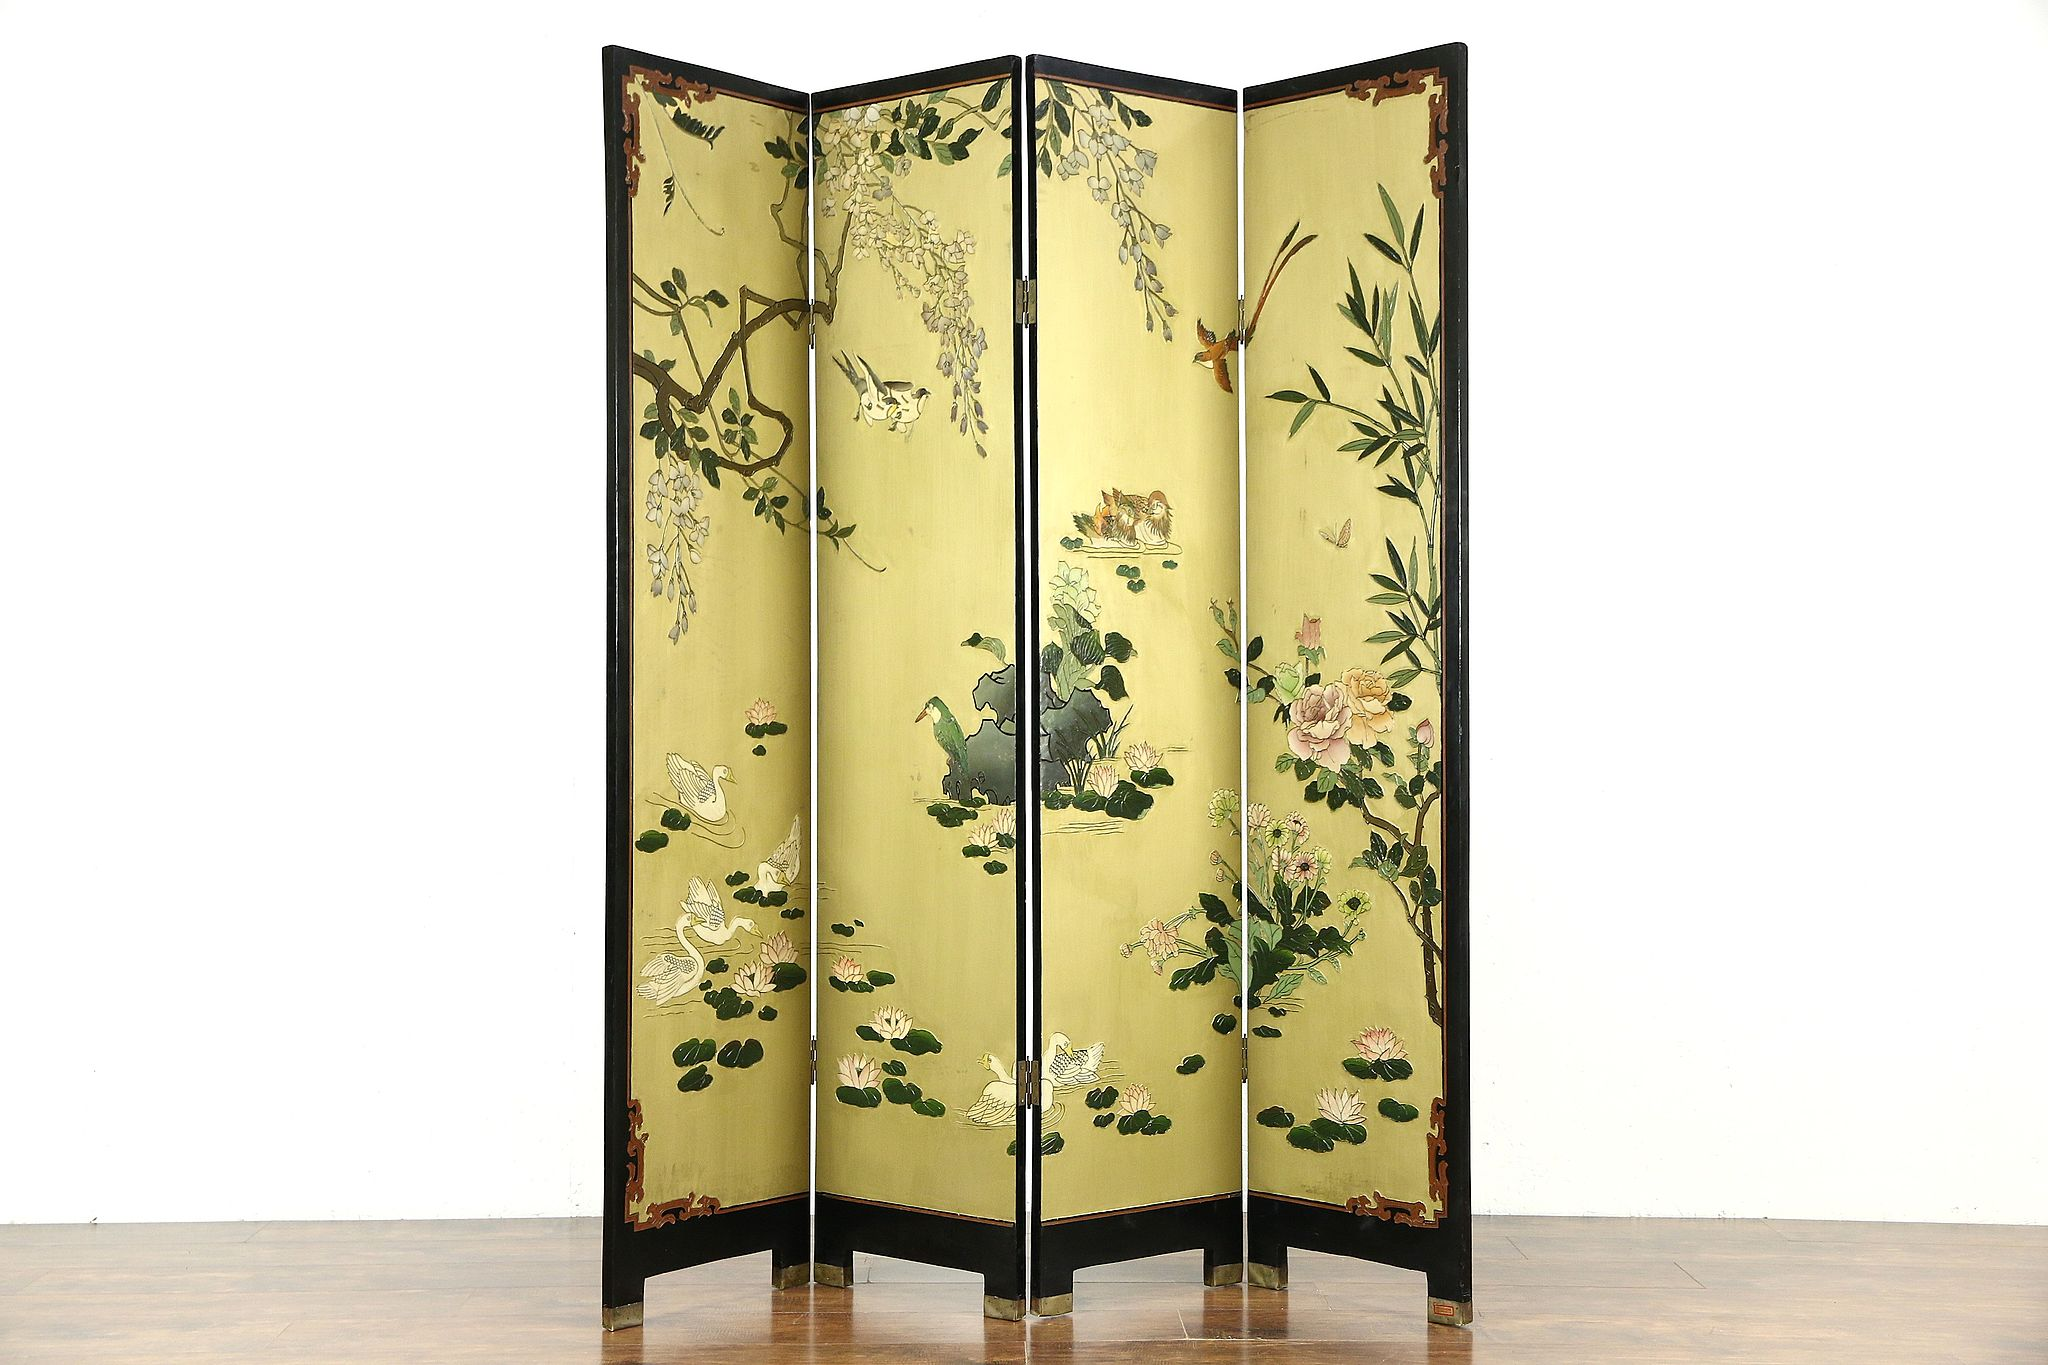 chinese kitchen accessories kraftmaid cabinet prices sold - coromandel carved 4 panel screen harp gallery